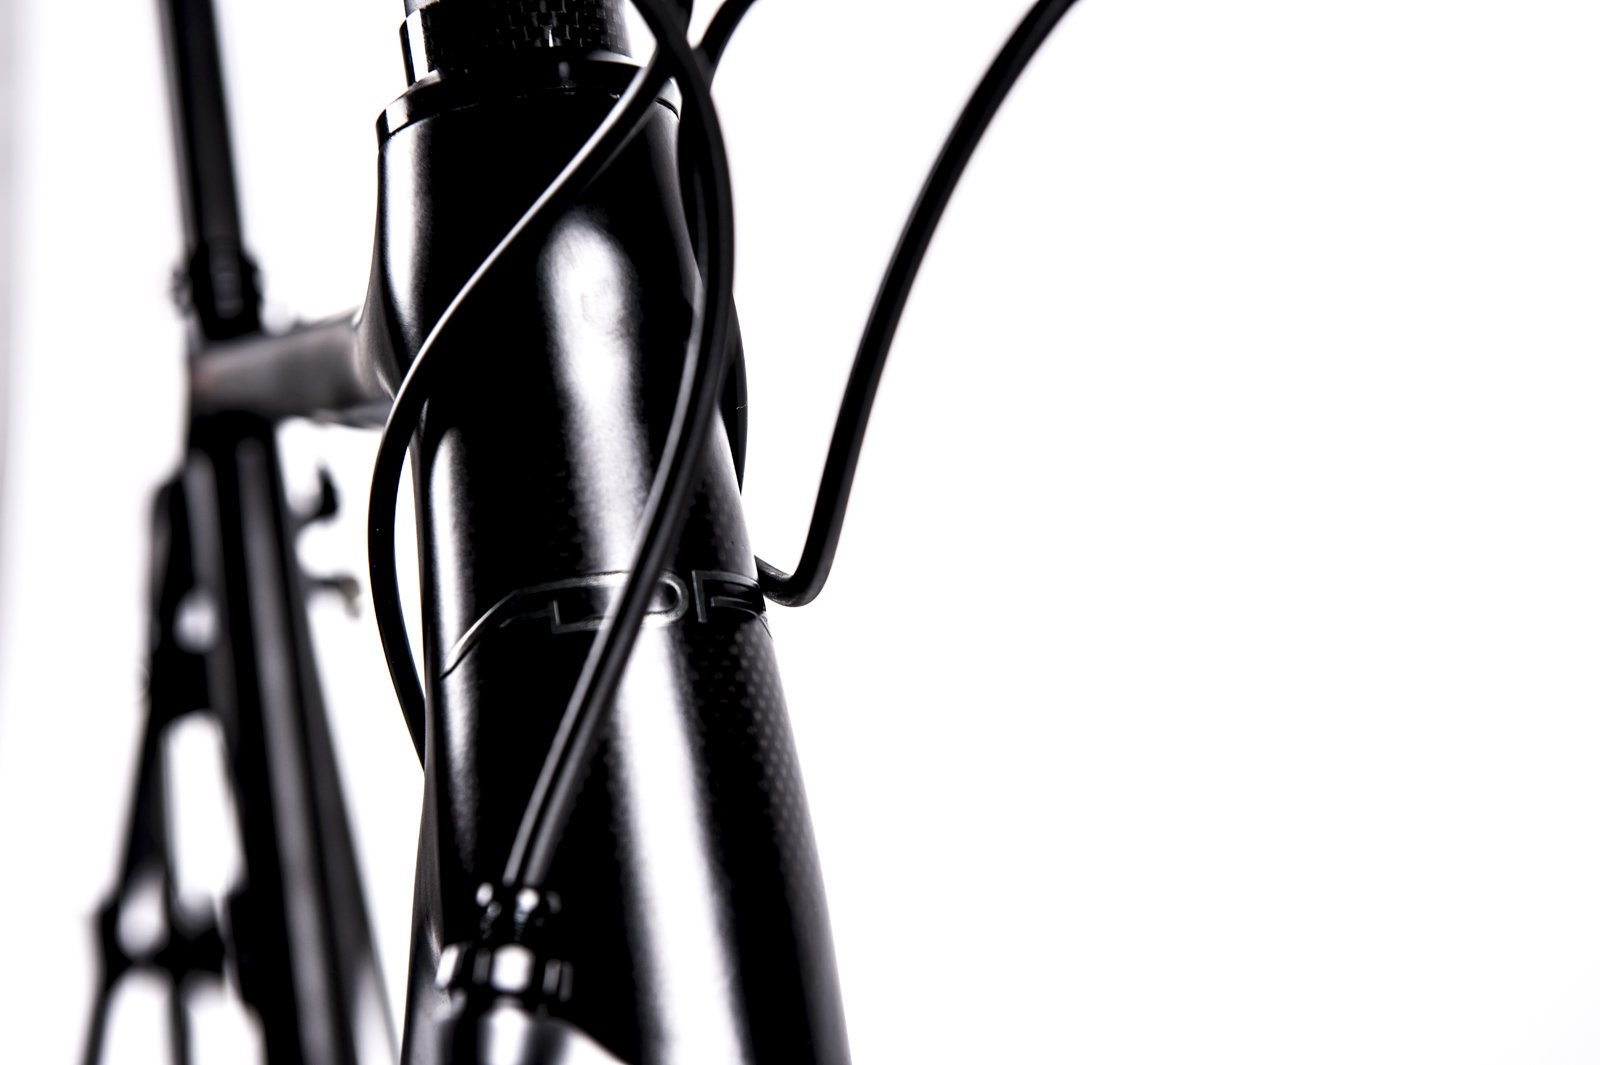 Head tube focus